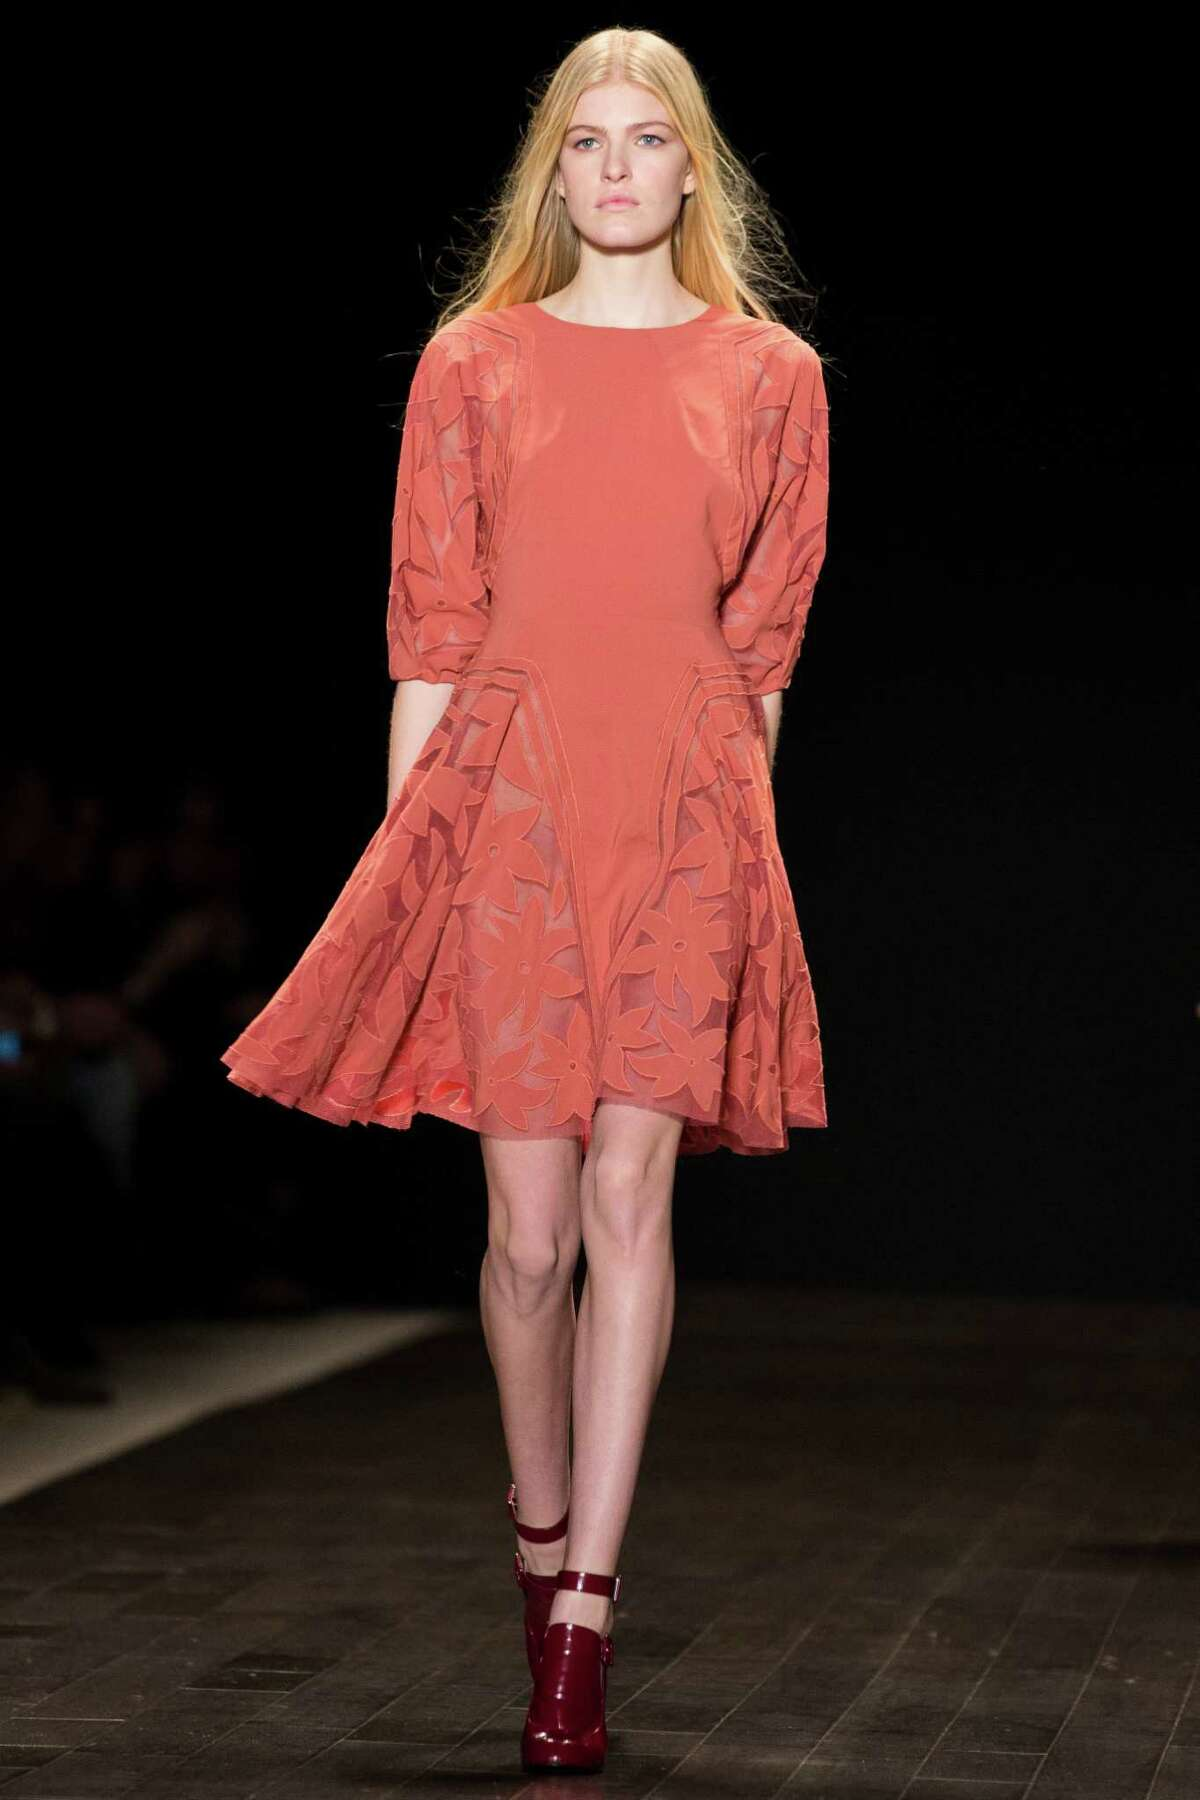 A model walks the runway at the presentation of the Jill Stuart fall 2013 fashion collection.